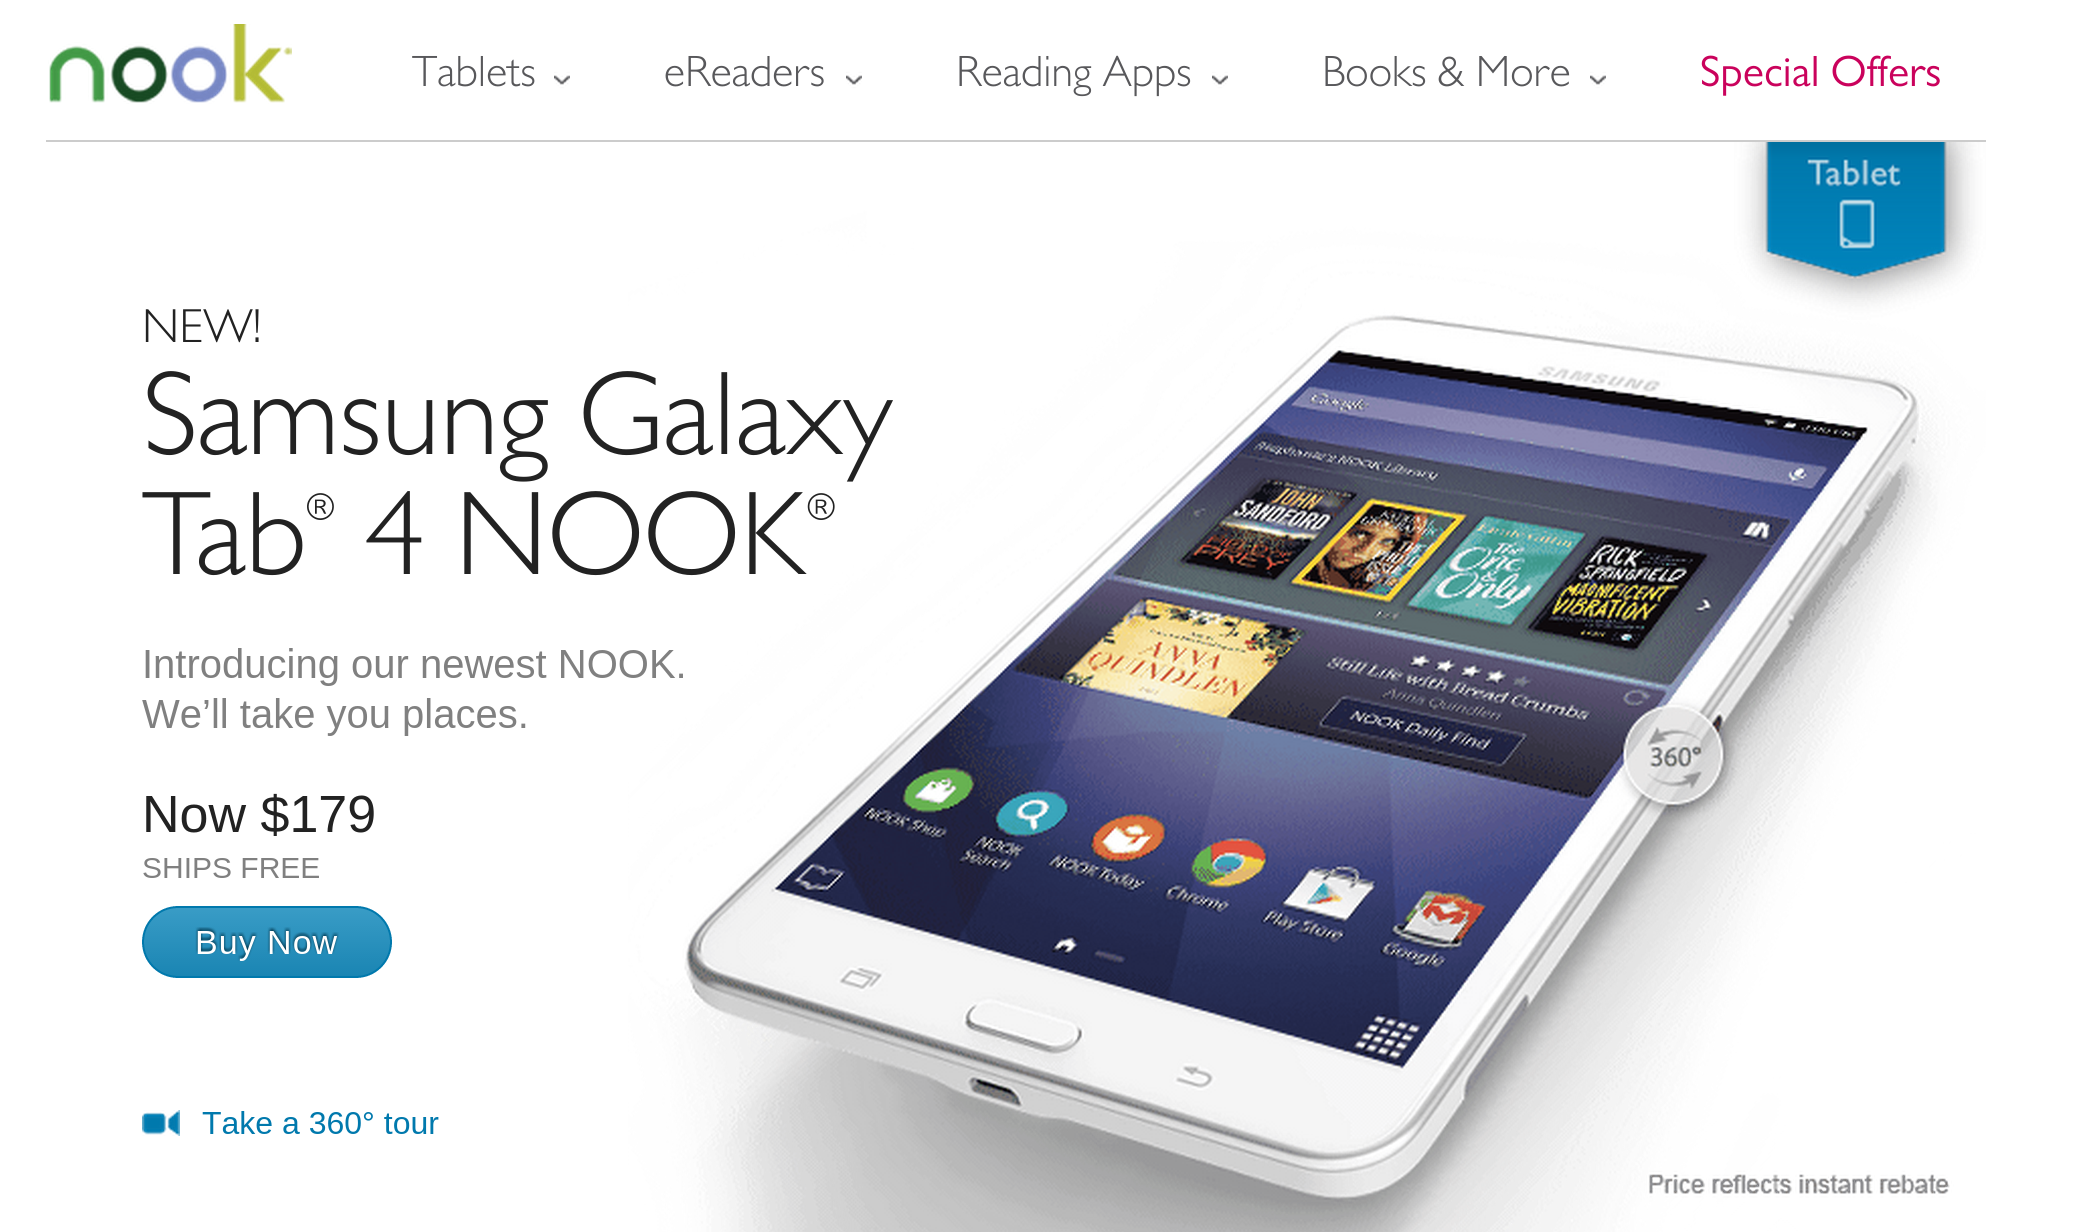 samsung galaxy tab 4 nook user manual